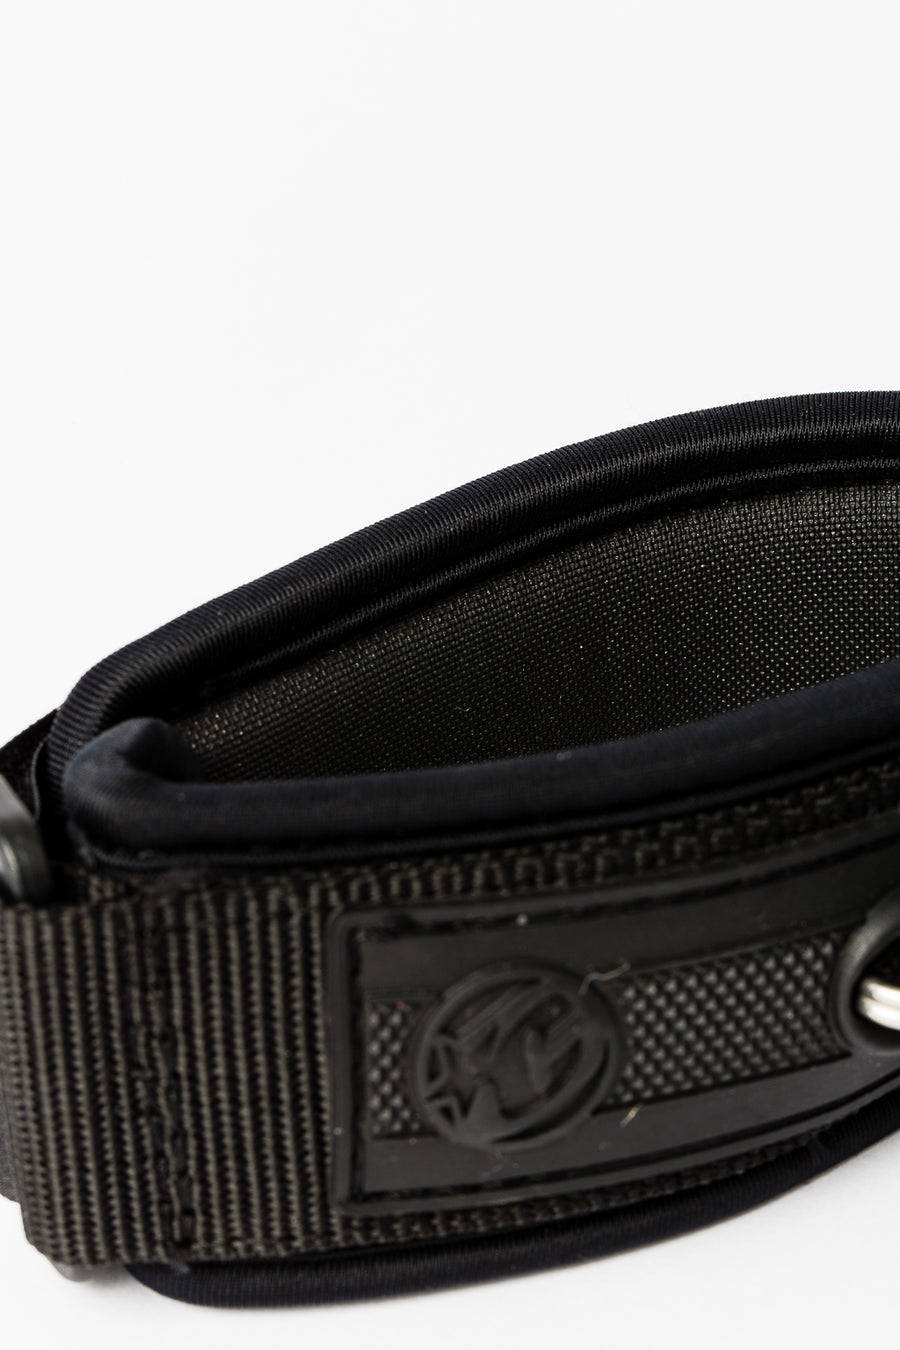 Ryan Hardy Bicep Leash - XL